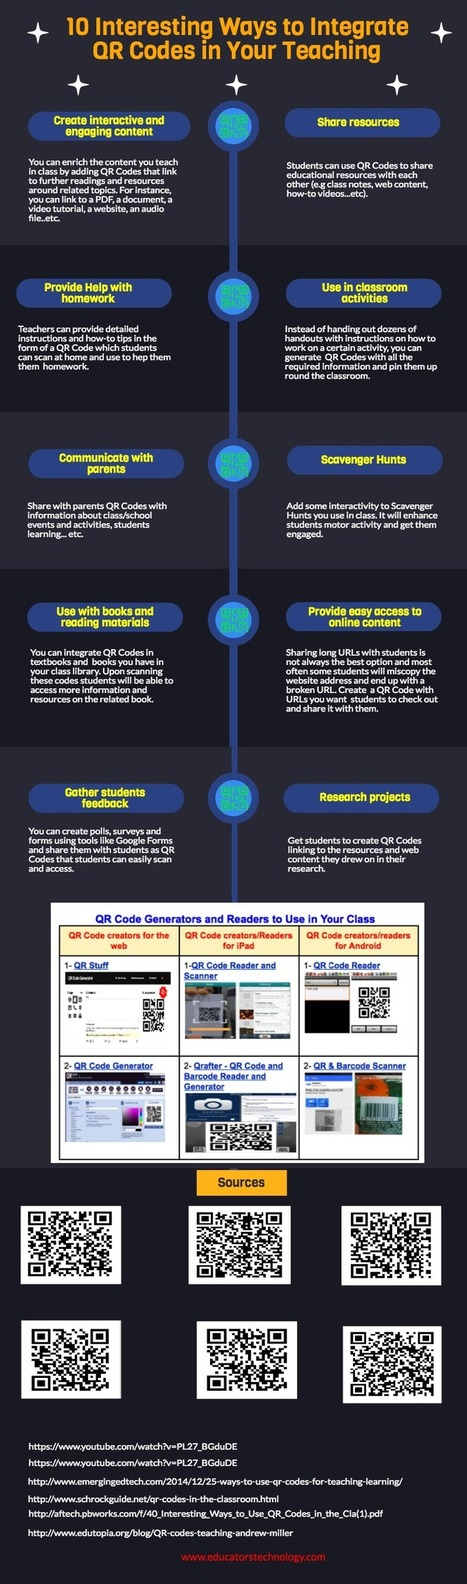 10 Interesting Ways to Integrate QR Codes in Your Teaching (Infographic) ~ Educational Technology and Mobile Learning | 21st Century Literacy and Learning | Scoop.it